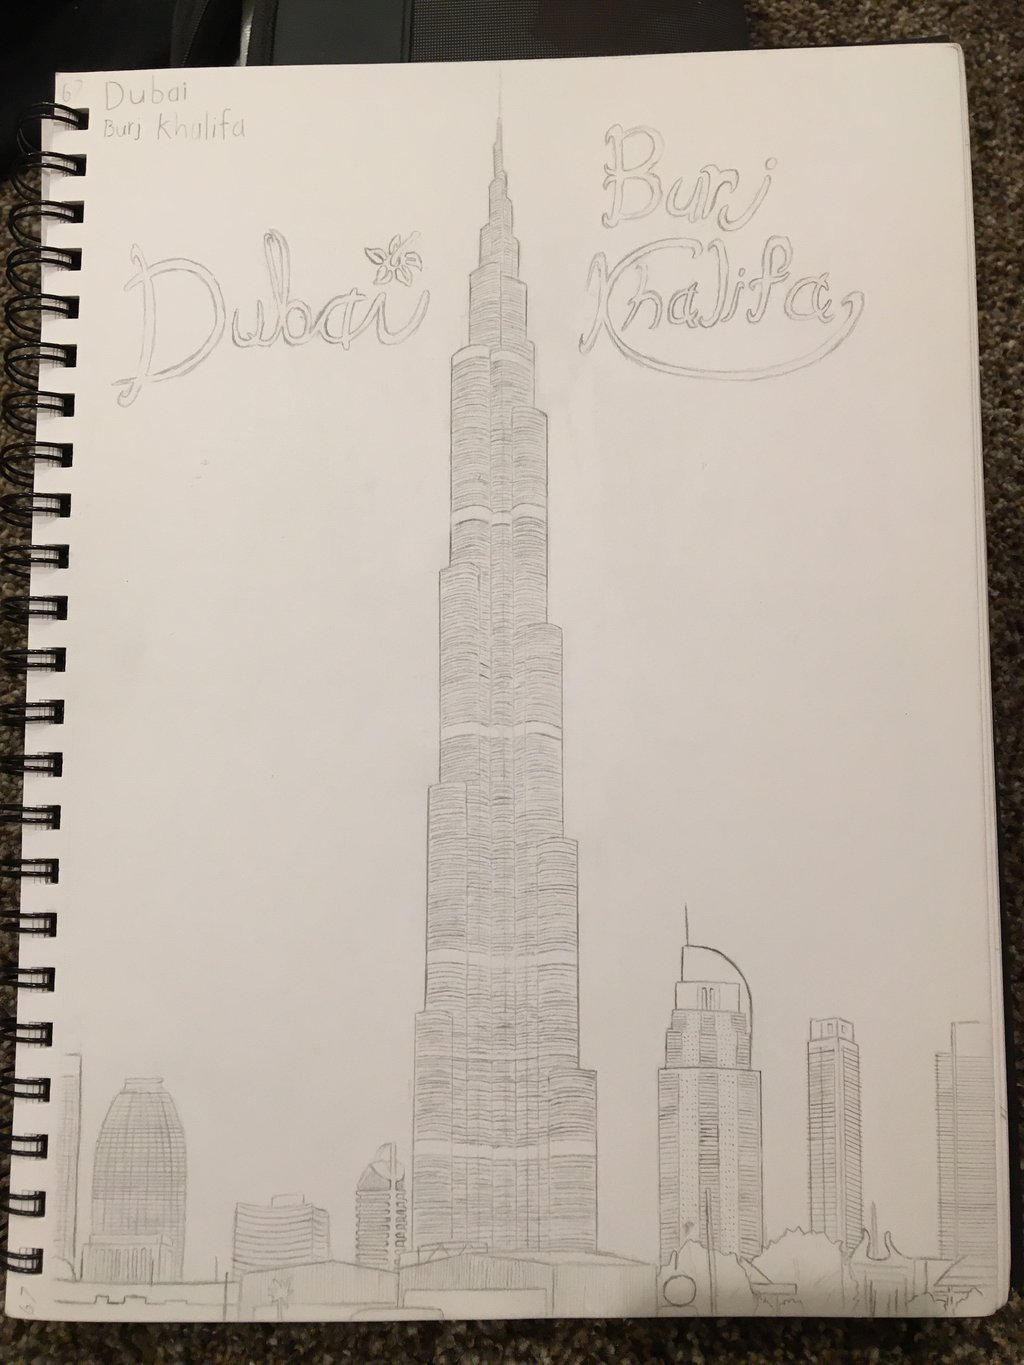 Burj khalifa sketch by chainsaw8712 on deviantart for Burj khalifa sketch